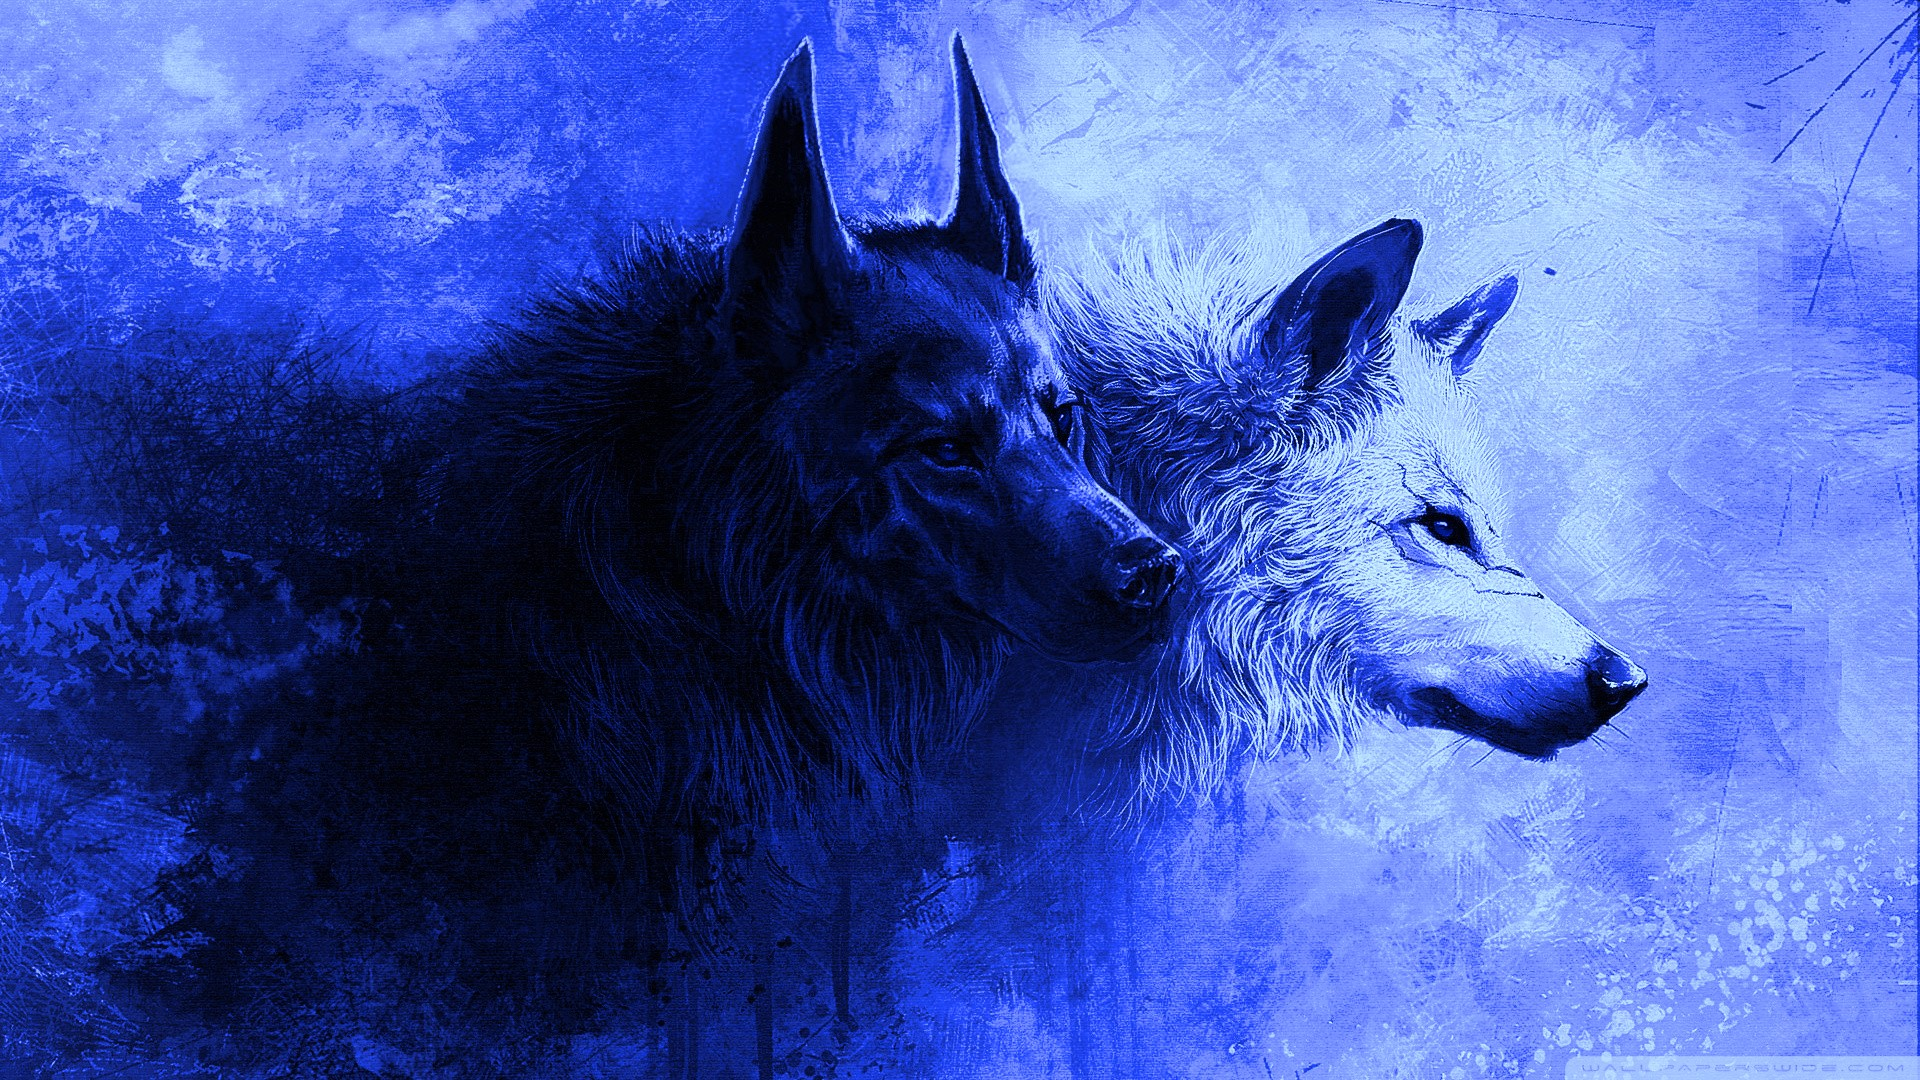 Best HD Cool Wolf Wallpaper With high-resolution 1920X1080 pixel. You can use and set as background for your Mac Desktop Background, Windows Screensavers, iPhone Wallpapers, Tablet or Android Lock screen and another Smartphone